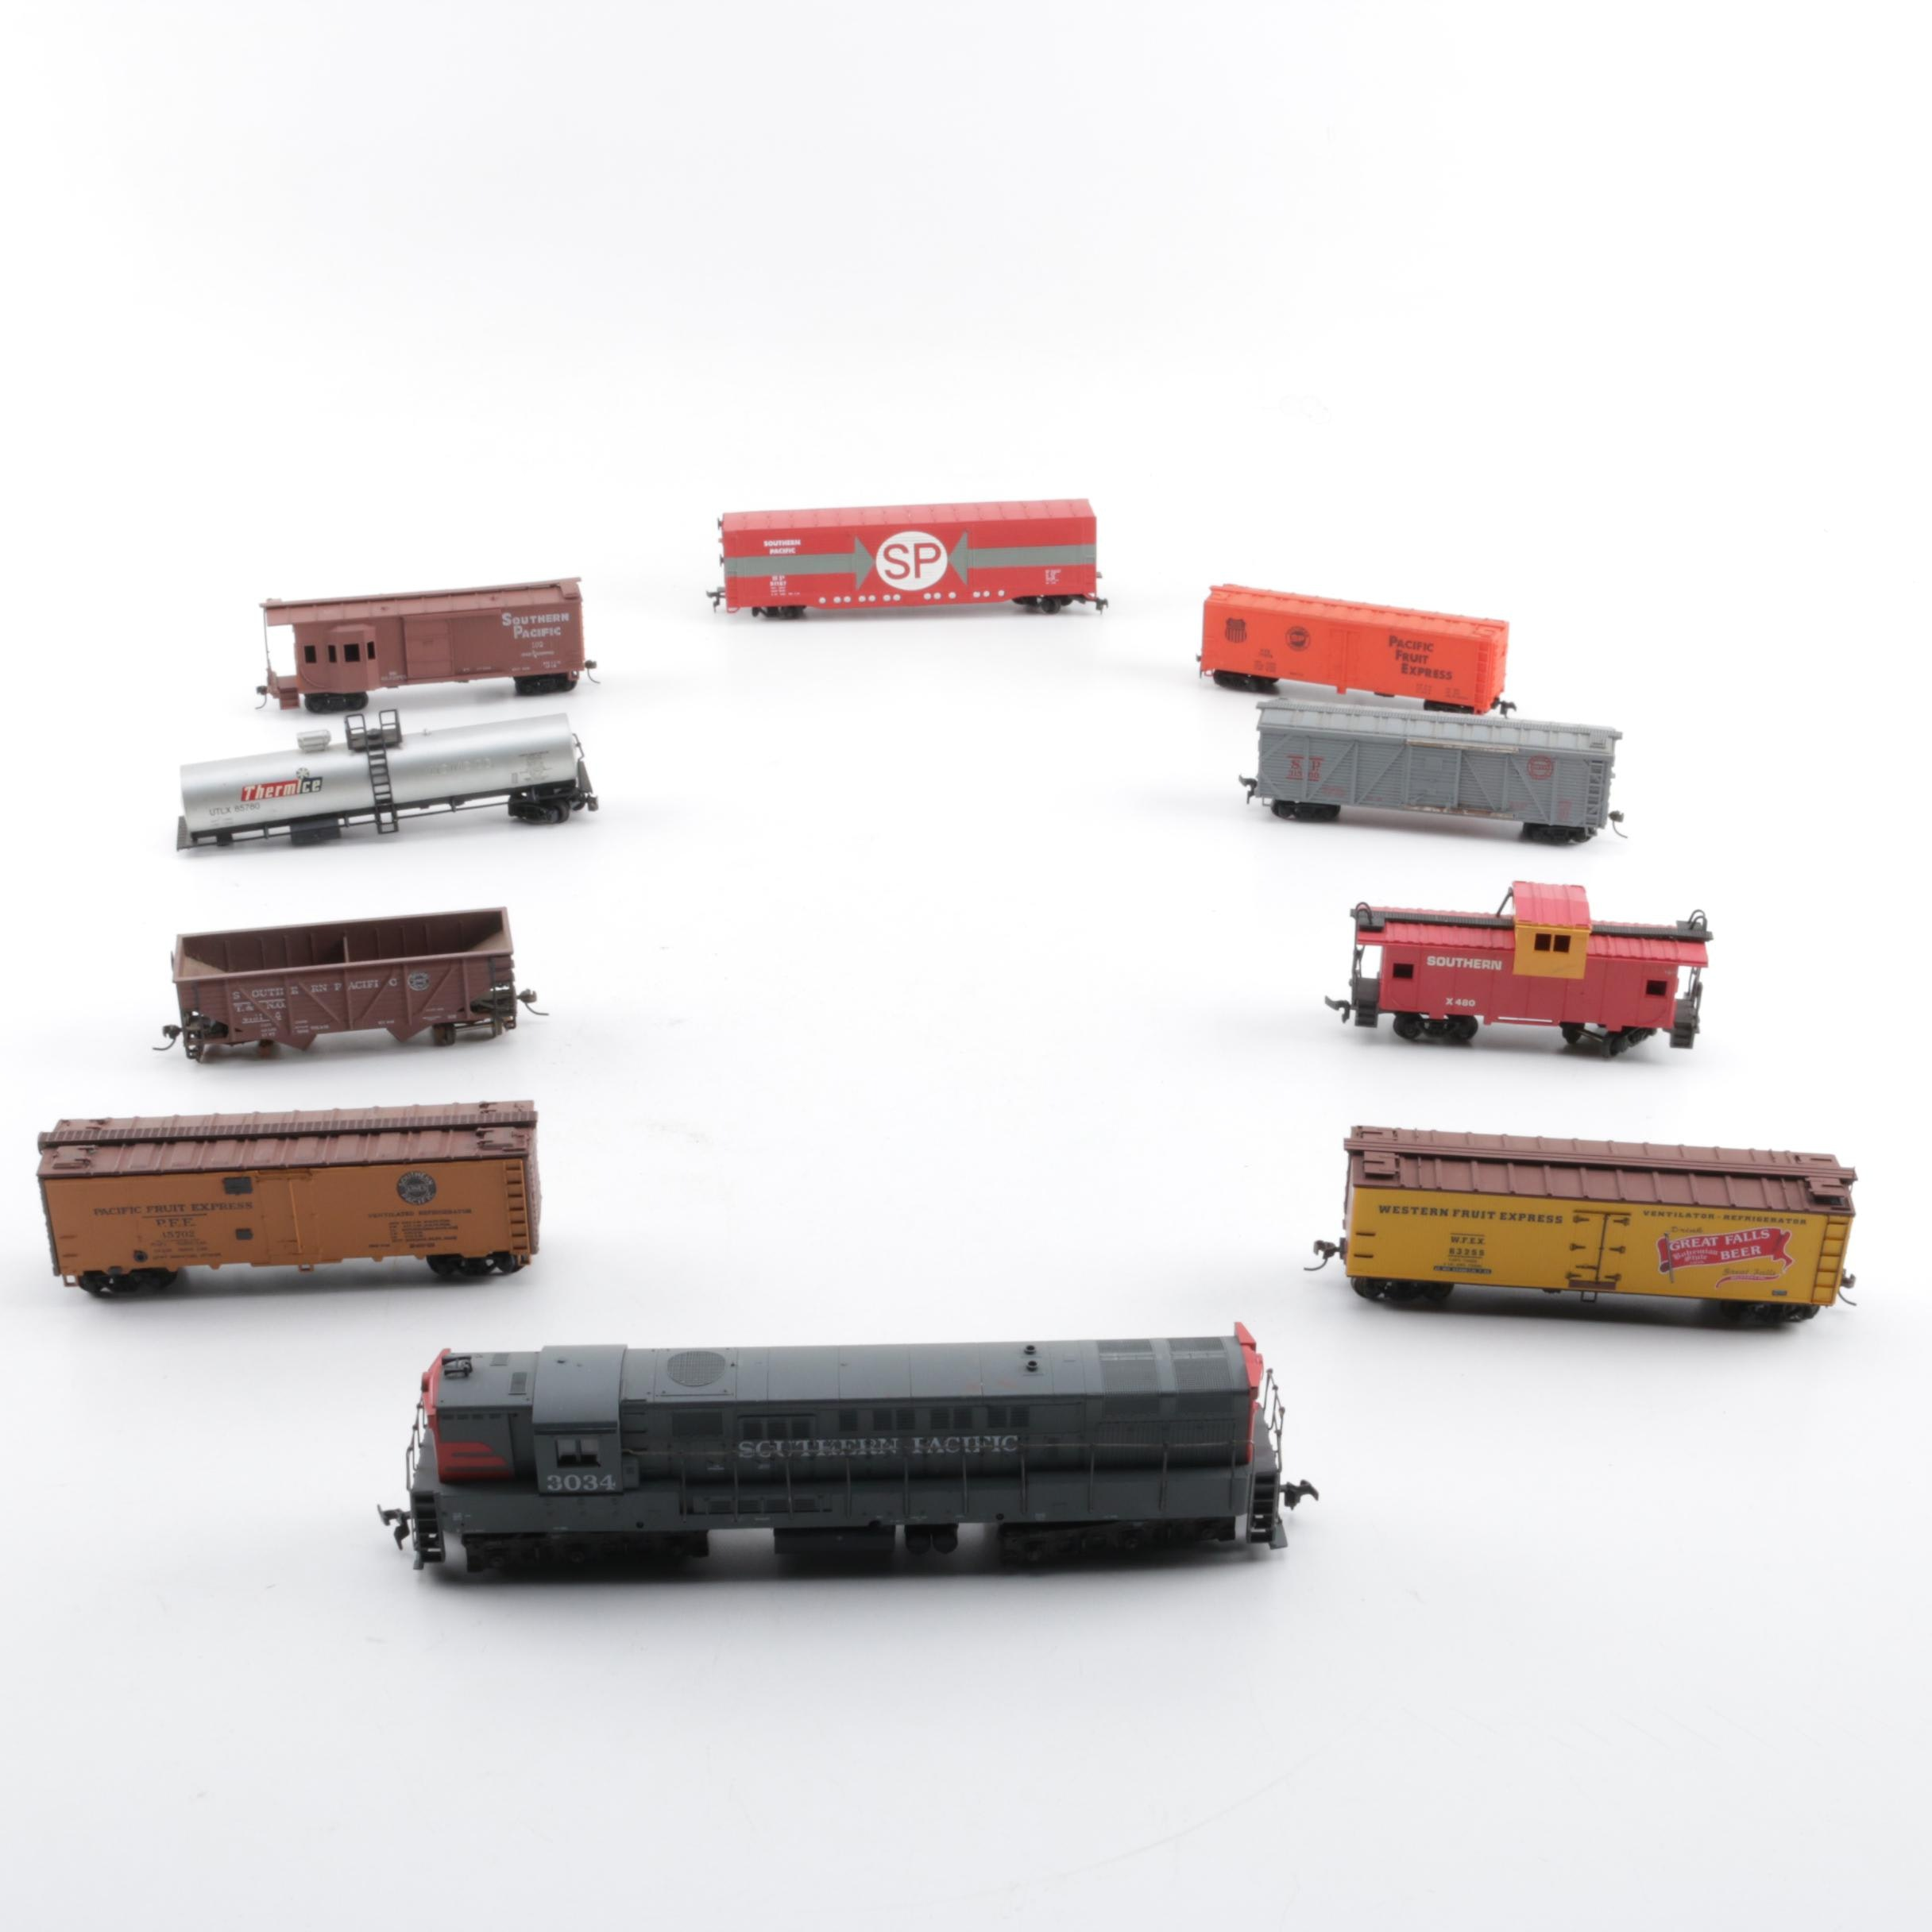 Assorted HO Scale Train Cars Including Varney